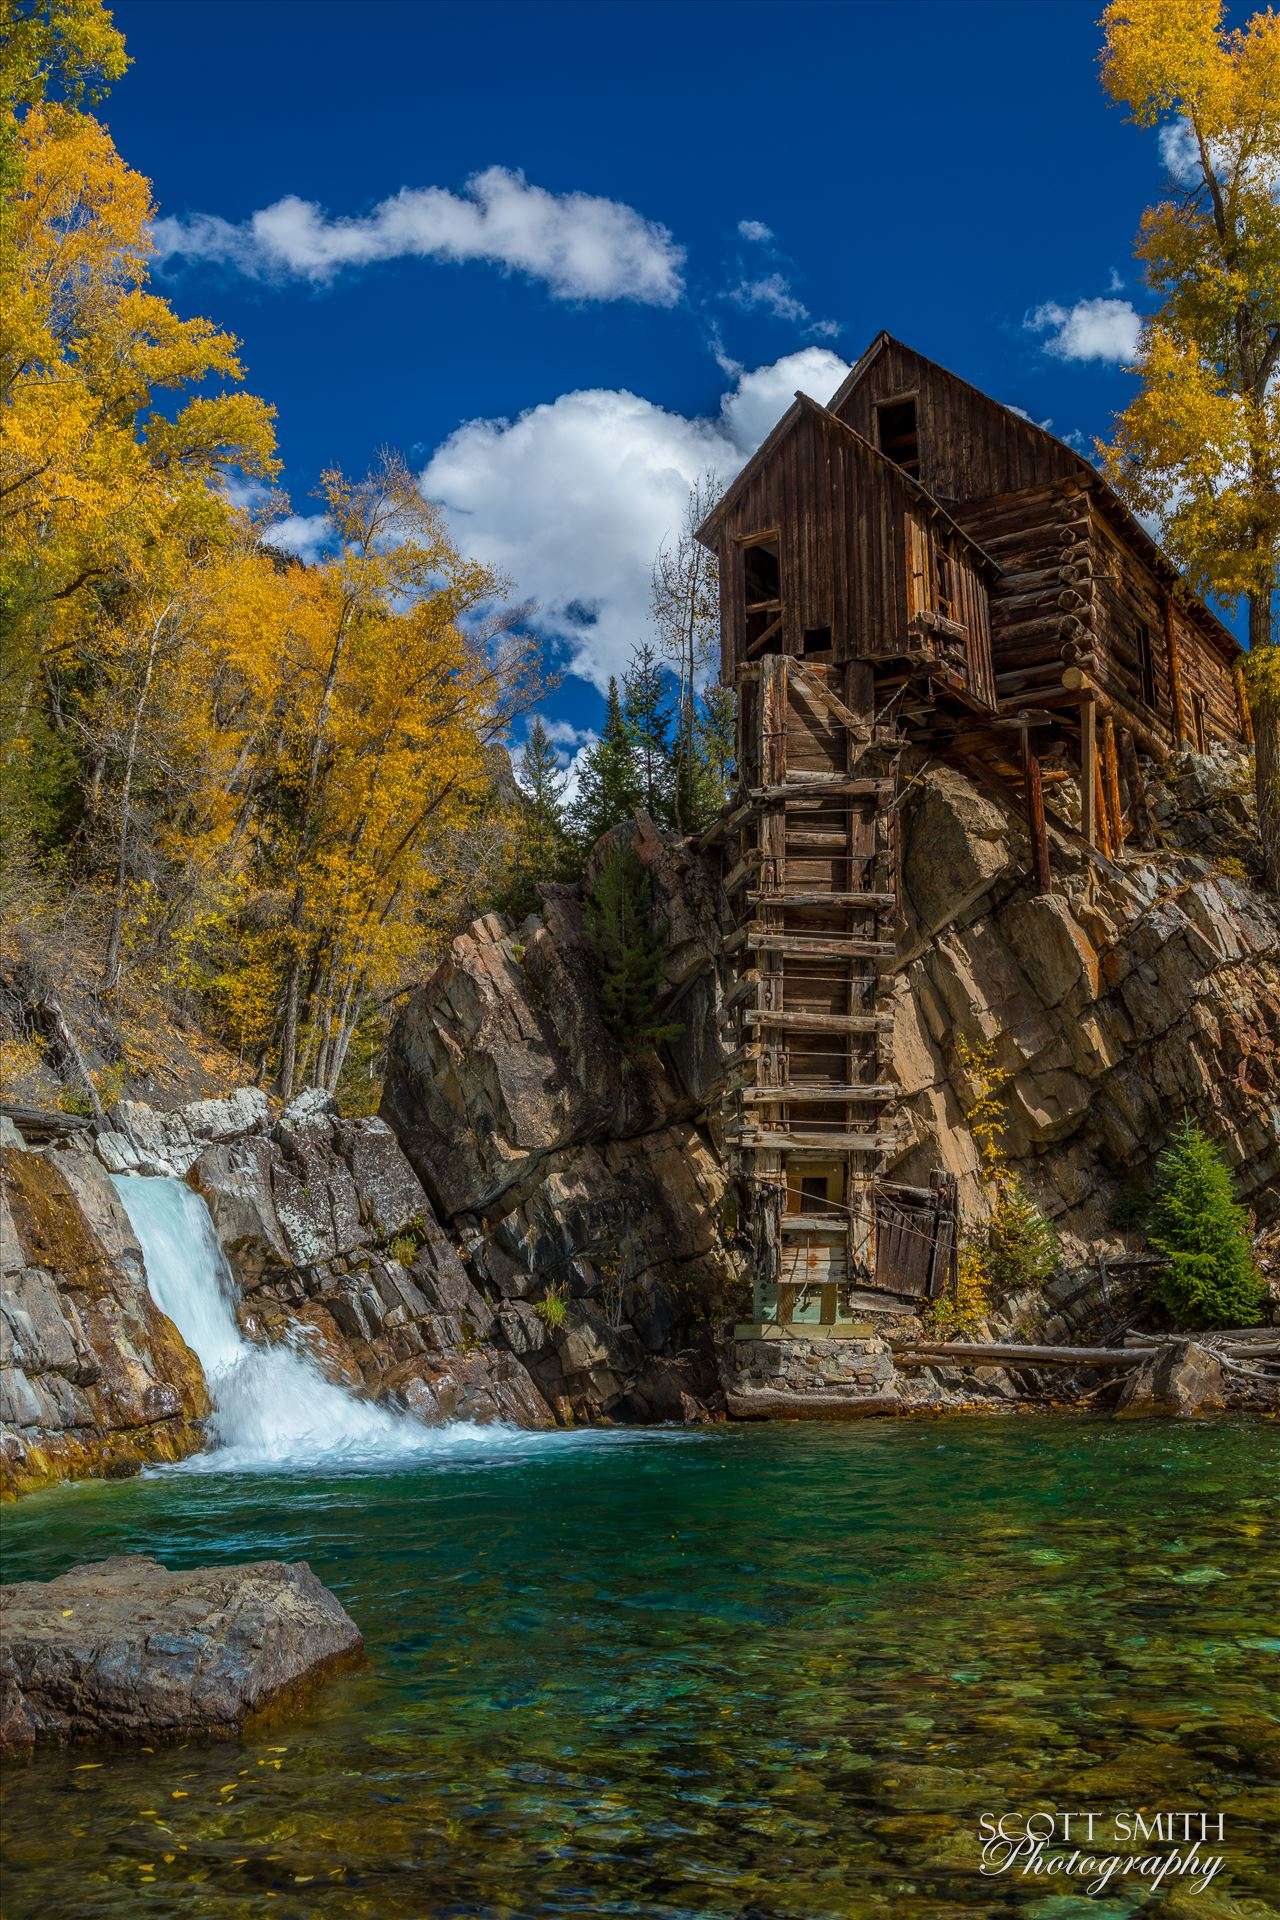 Crystal MIll No 3 - The Crystal Mill, or the Old Mill is an 1892 wooden powerhouse located on an outcrop above the Crystal River in Crystal, Colorado by D Scott Smith